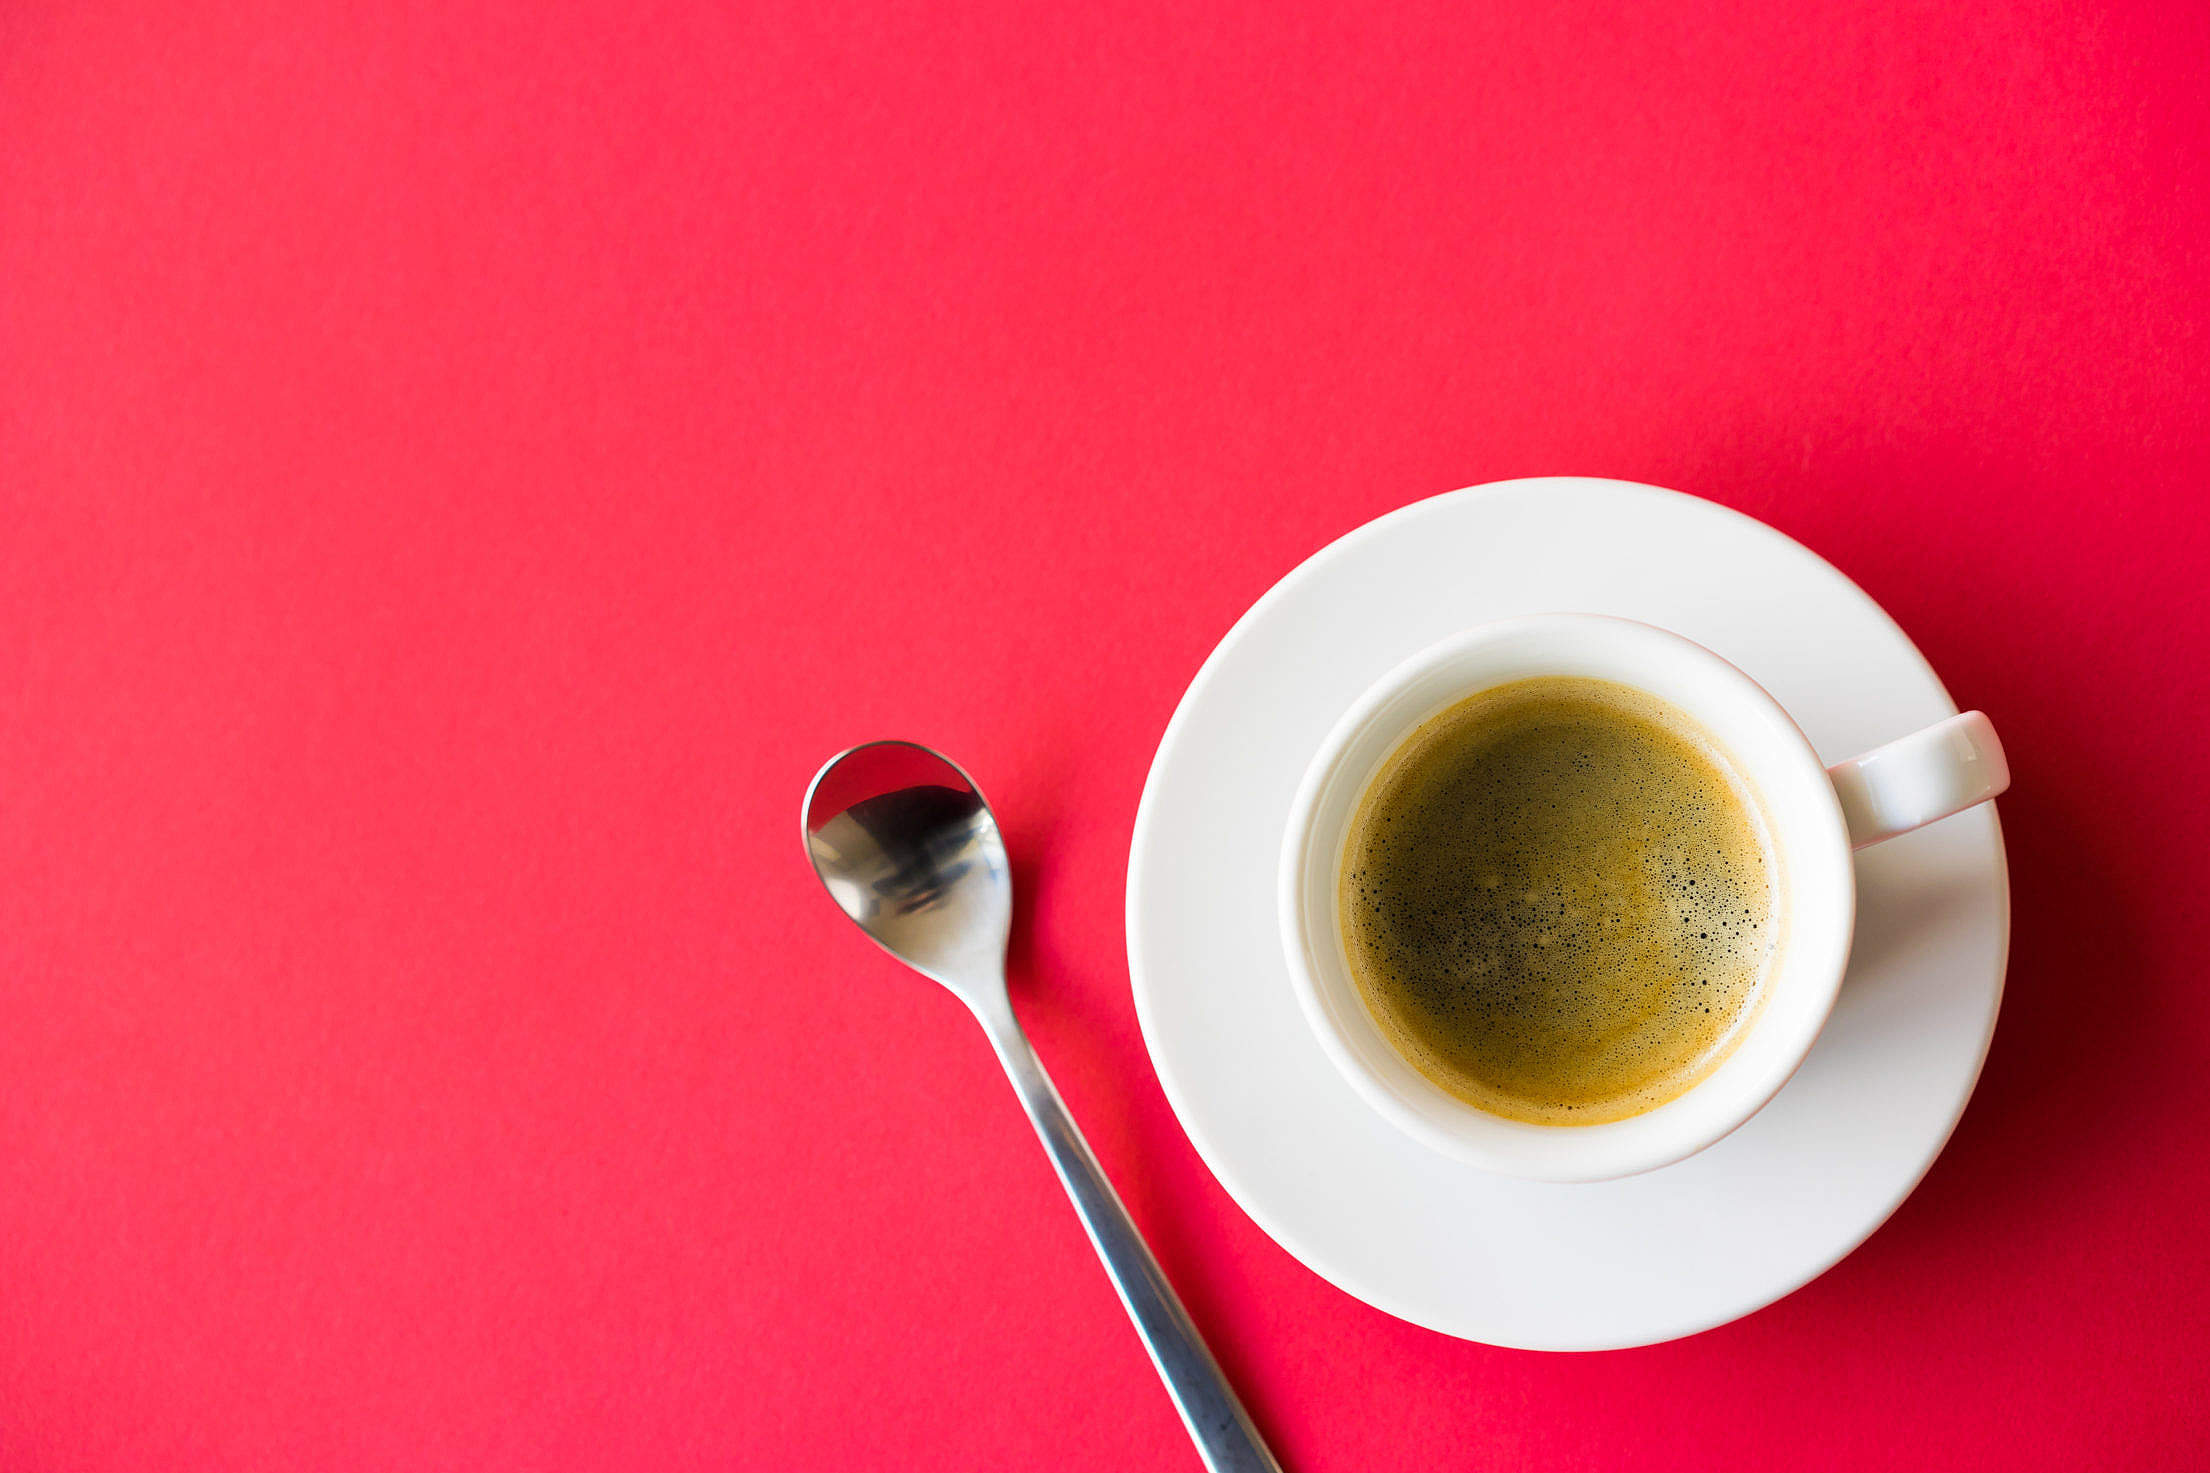 Cup of Coffee on Red Background Space for Text Free Stock Photo